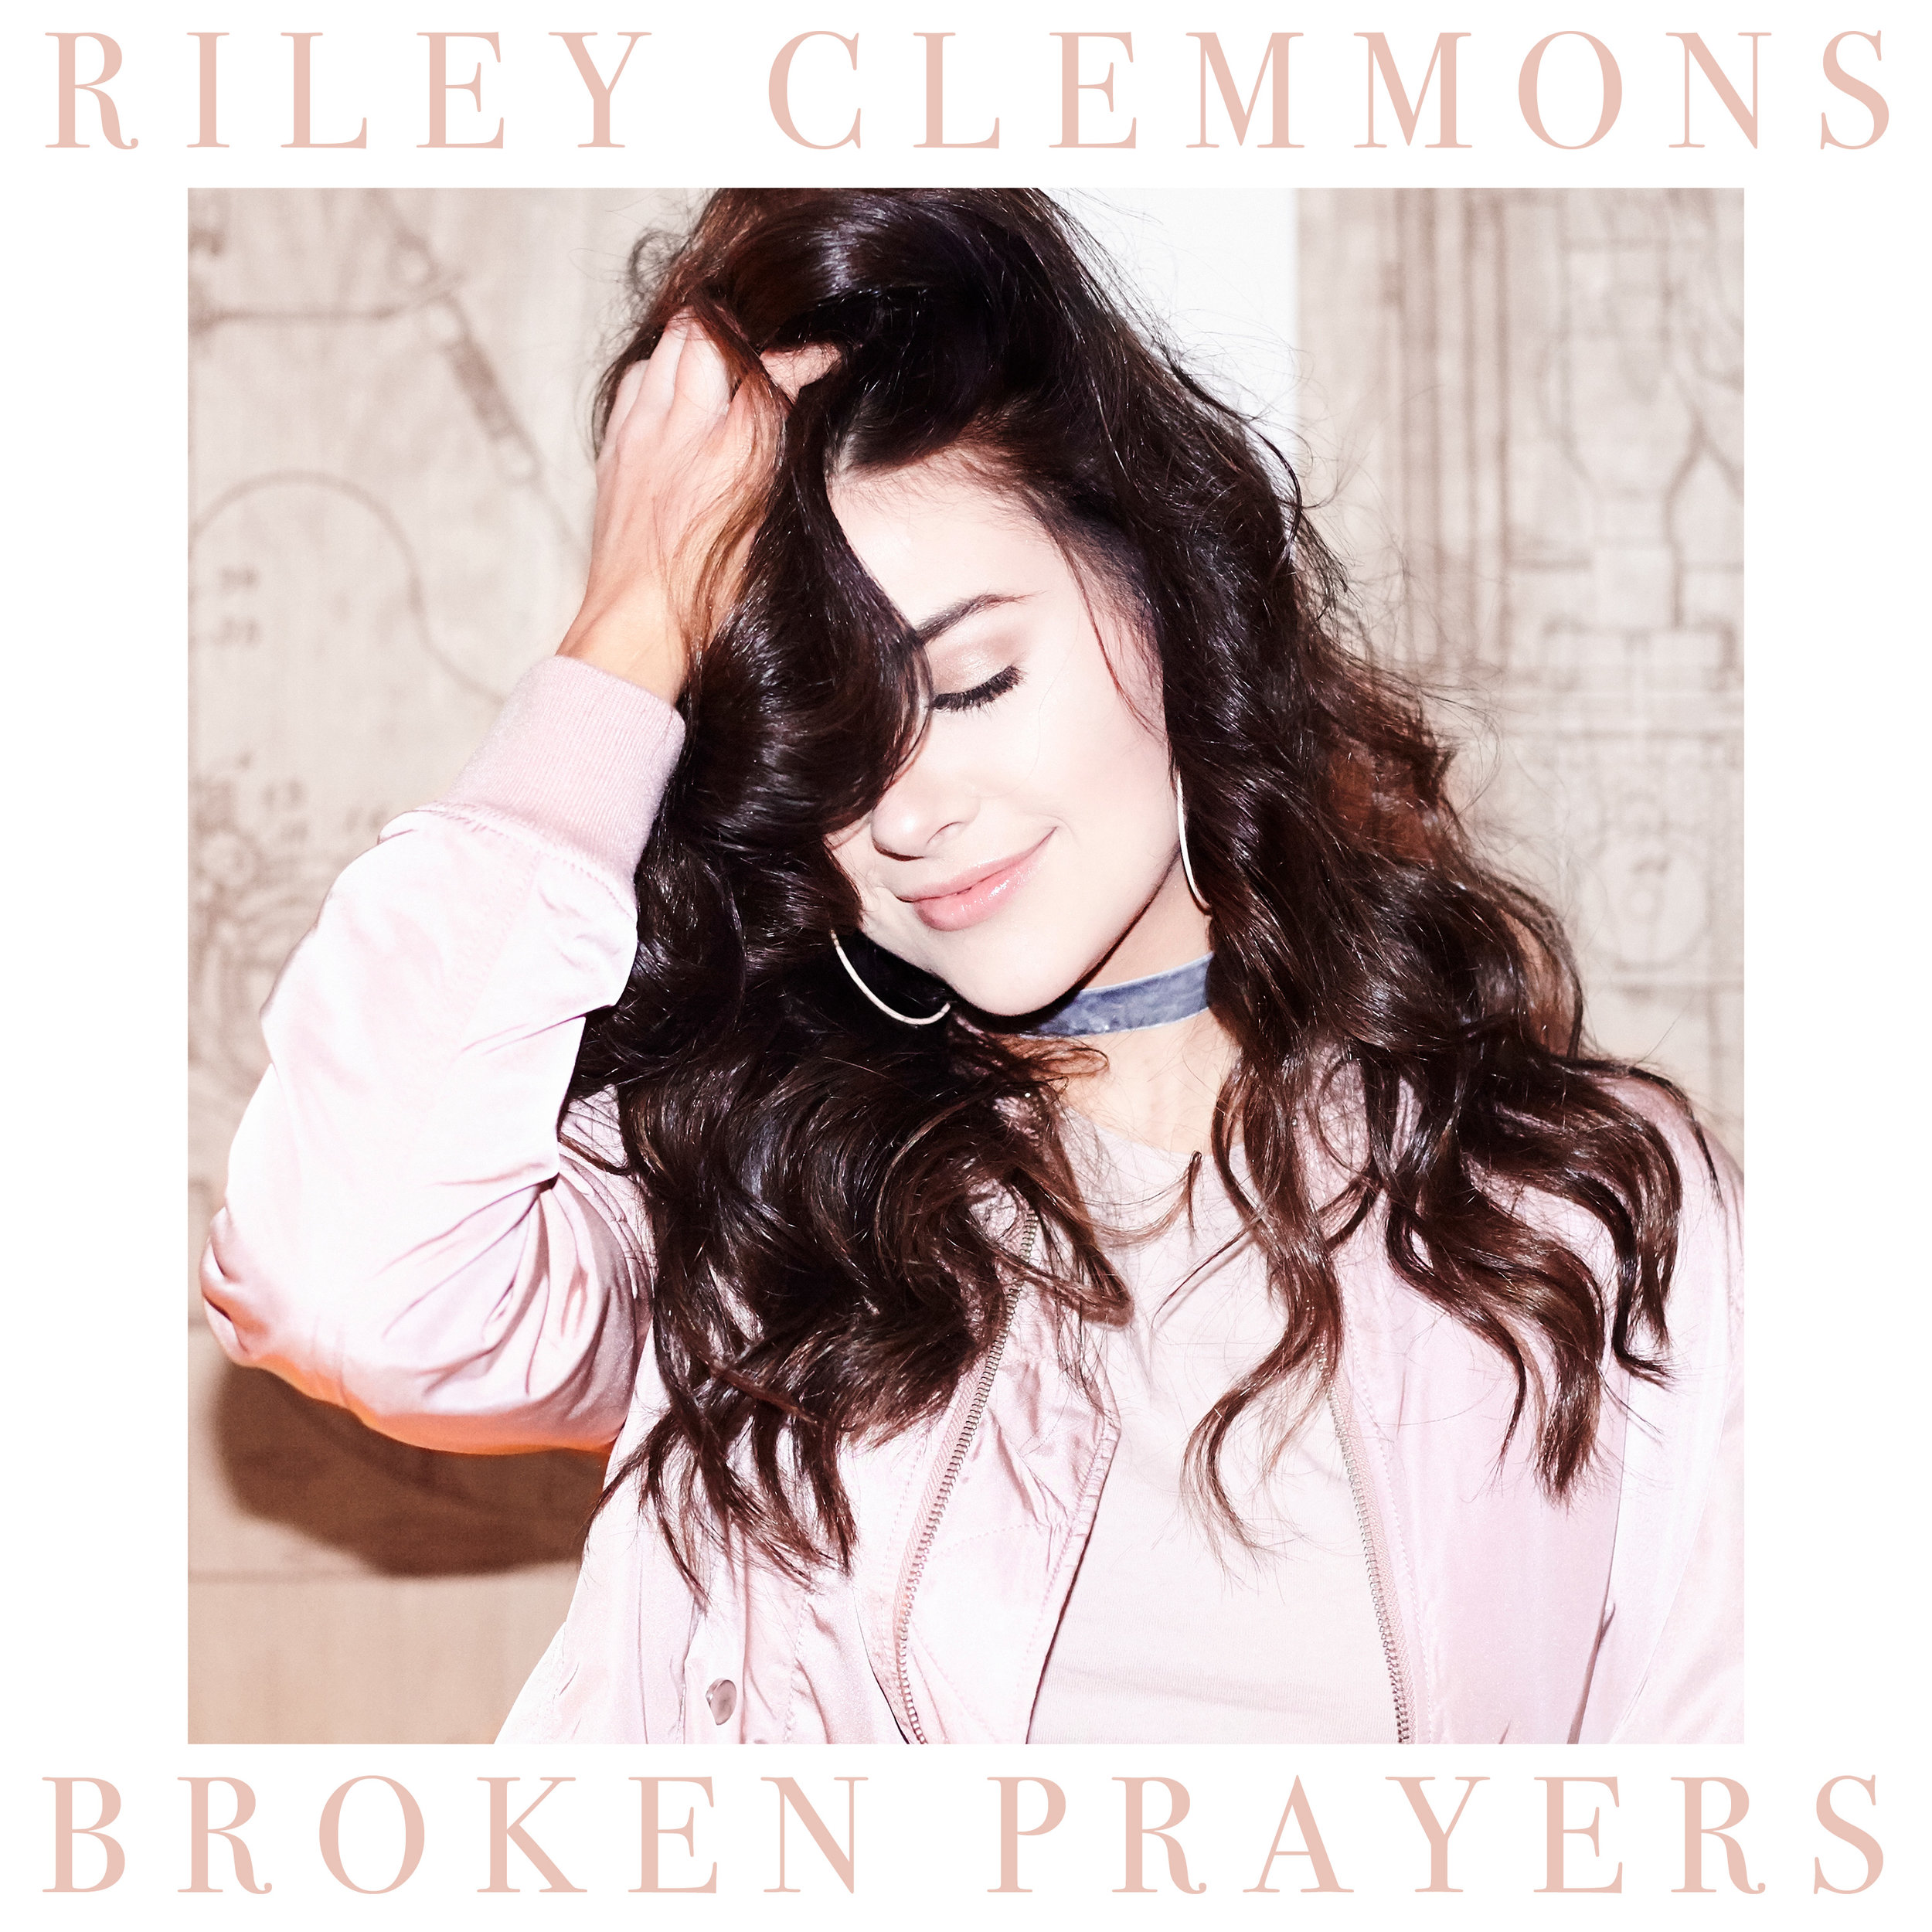 RileyClemmons_BrokenPrayers-CVR.jpg